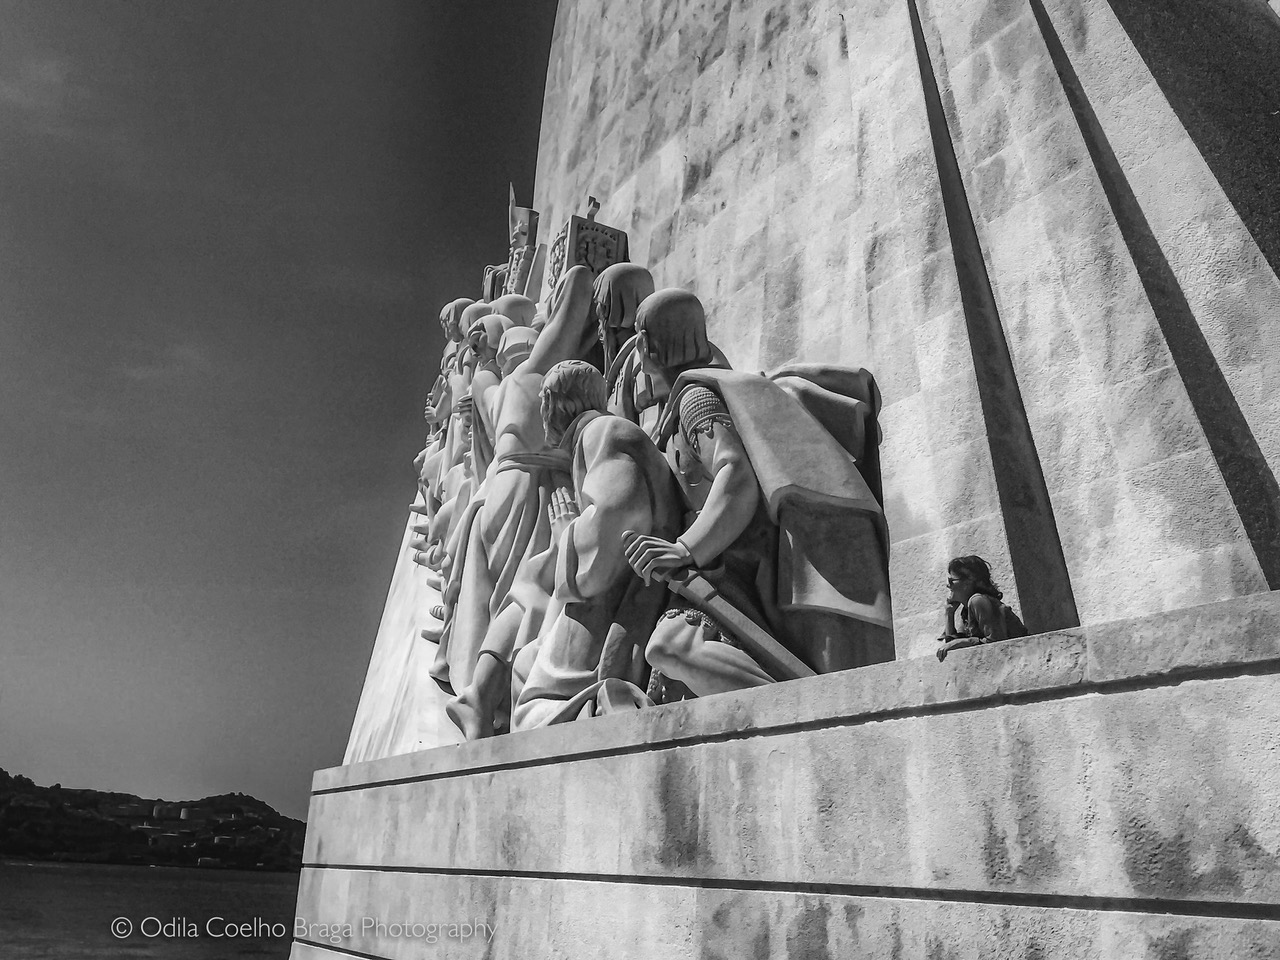 LISBON HISTORICAL PHOTO TOURS - Learn about Lisbon's Rich History, while photographing it's most beautiful sites.